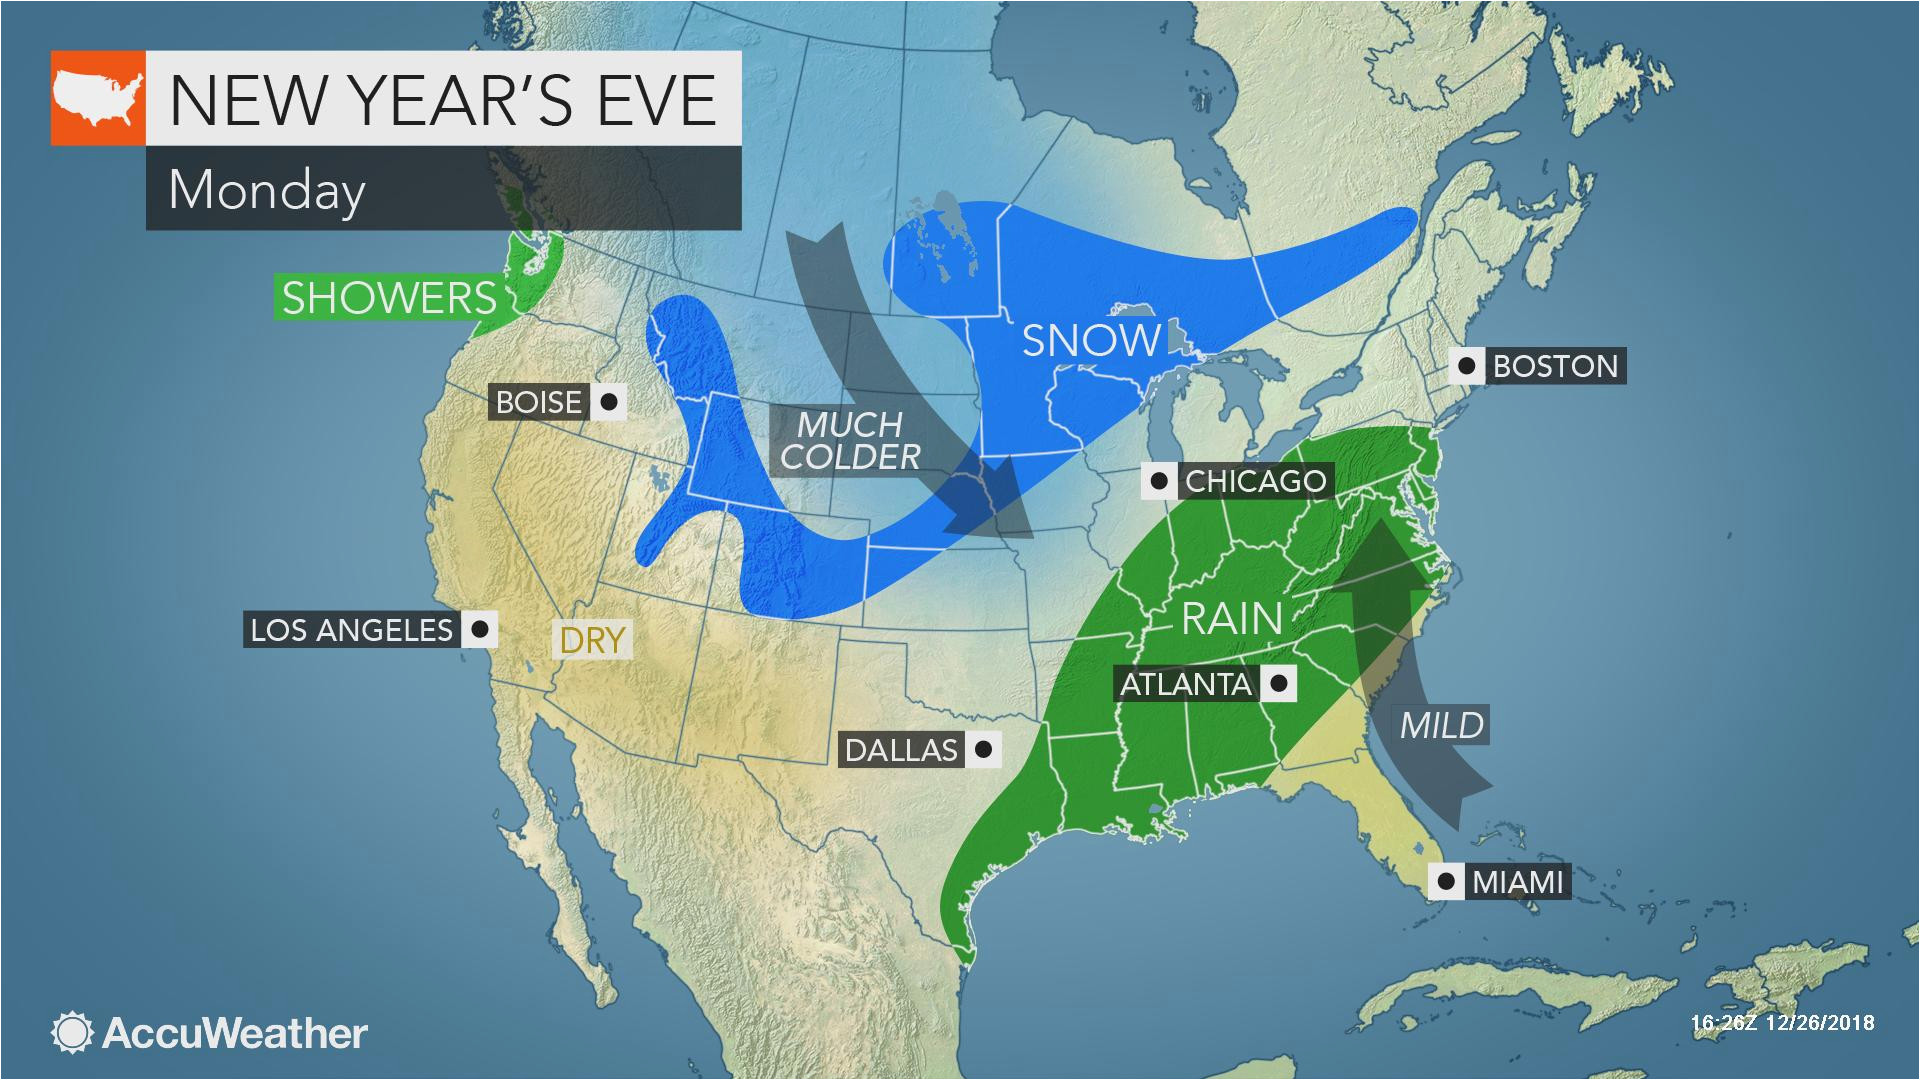 eastern us may face wet snowy weather as millions celebrate the end